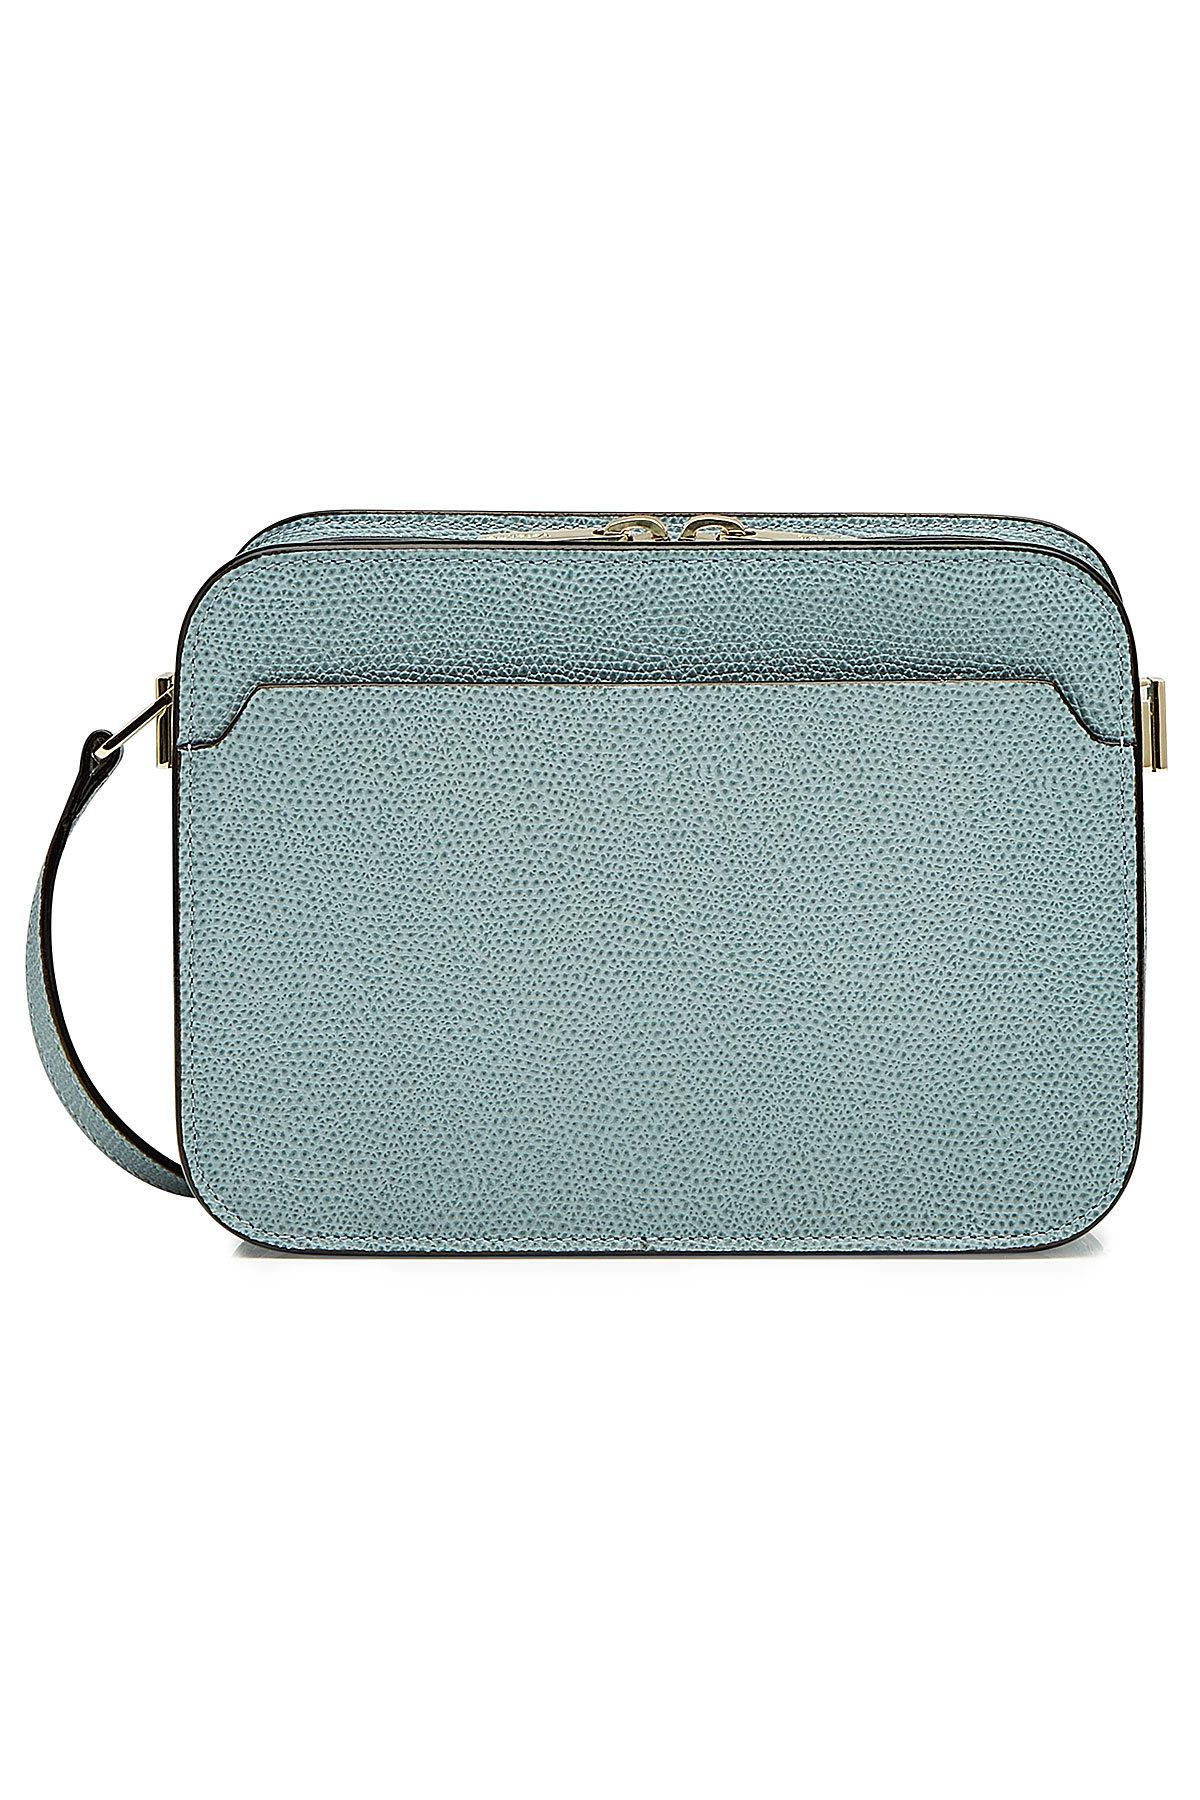 Valextra Leather Shoulder Bag In Blue